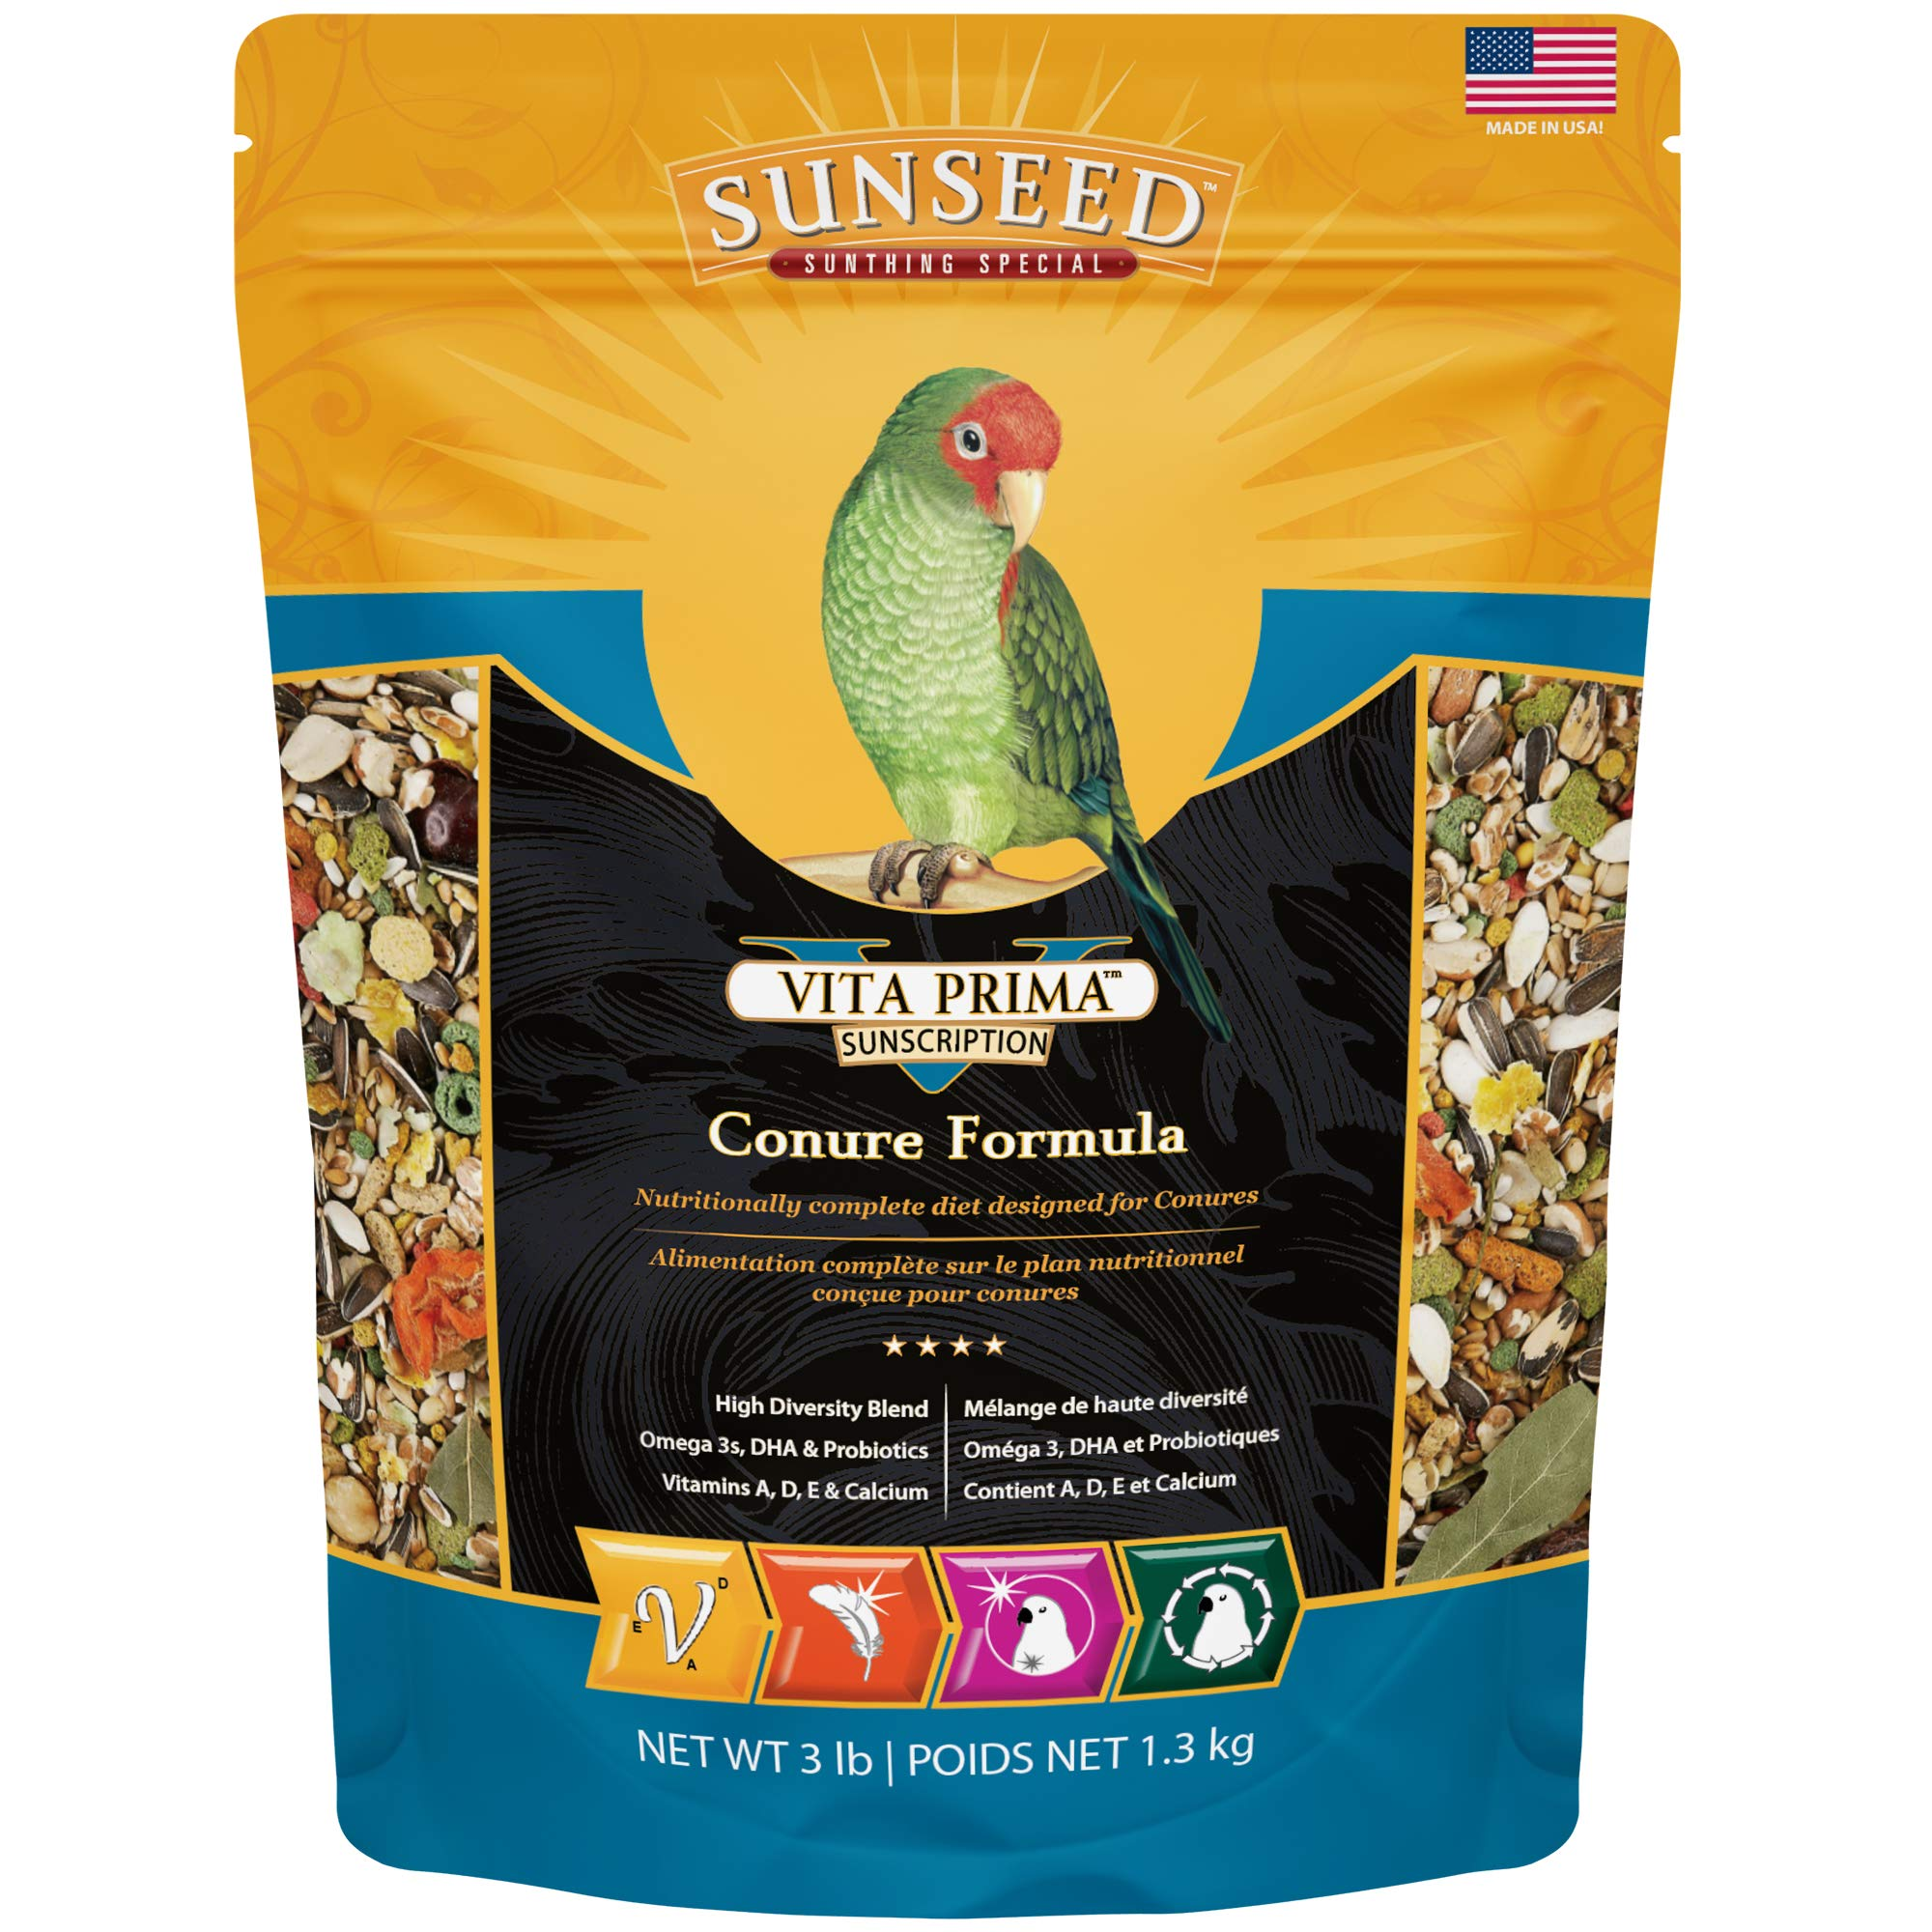 Sunseed 49040 Vita Prima Sunscription Conure Food - High-Variety Formula, 3 LBS by Sunseed